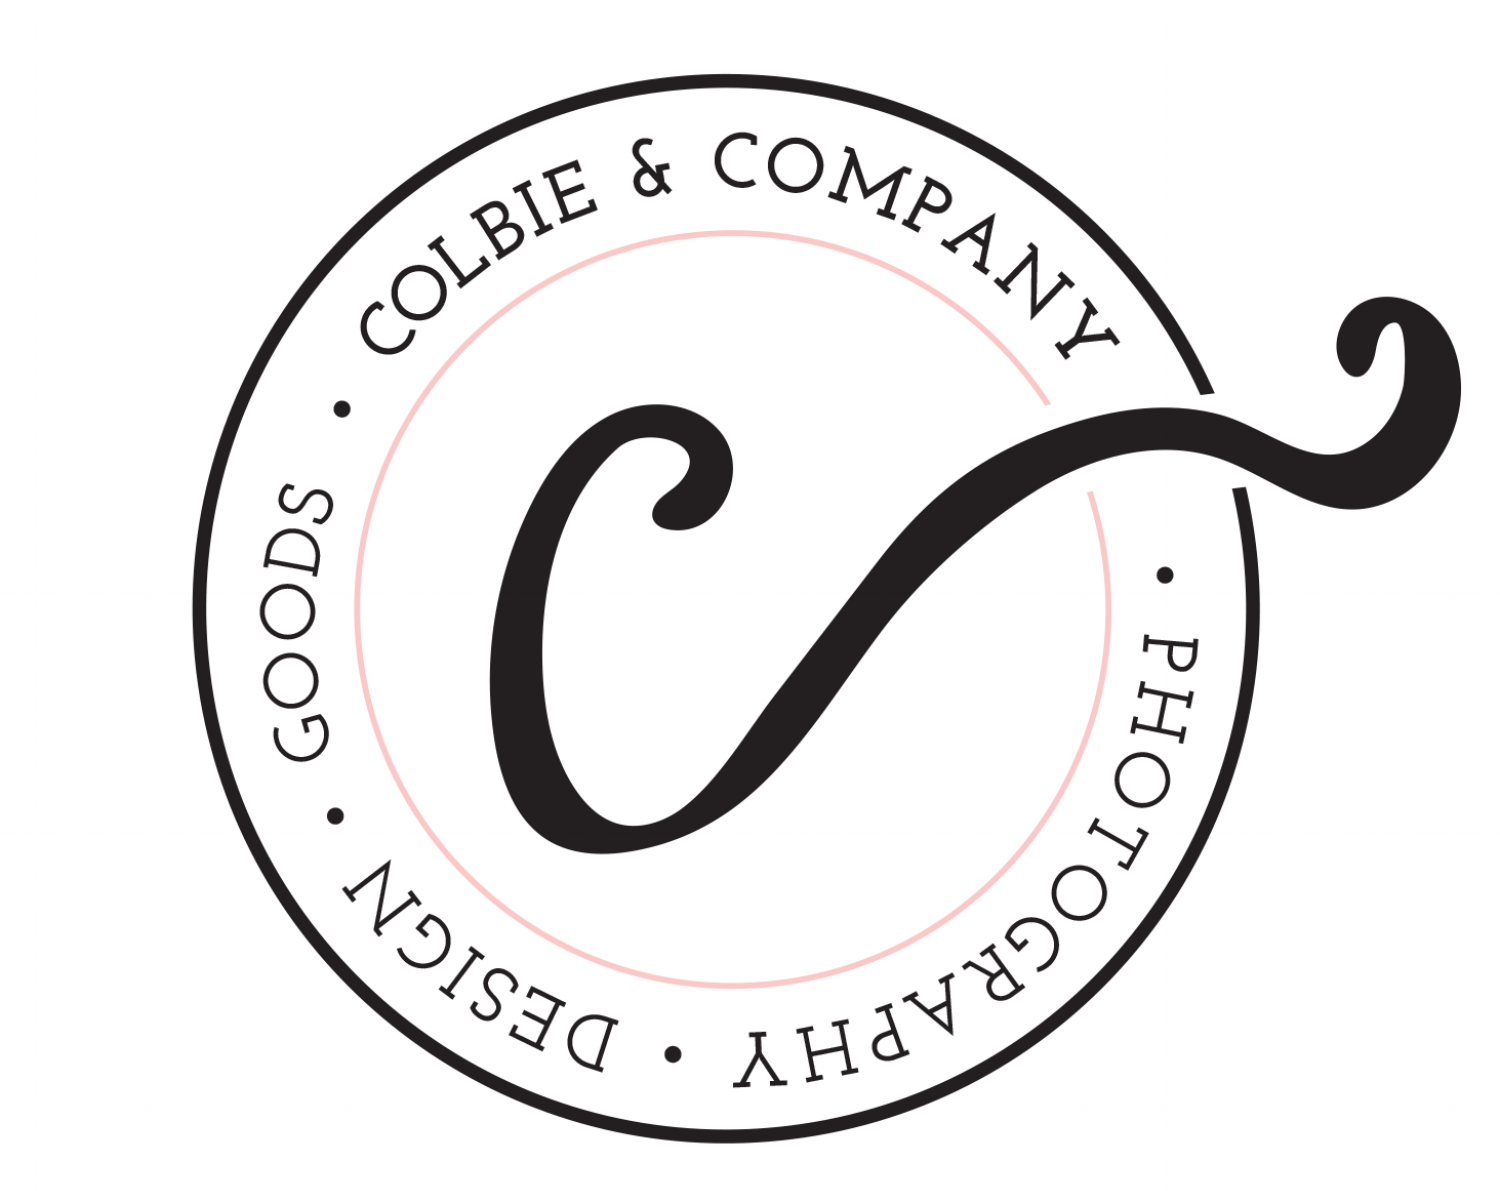 Colbie & Co., LLC